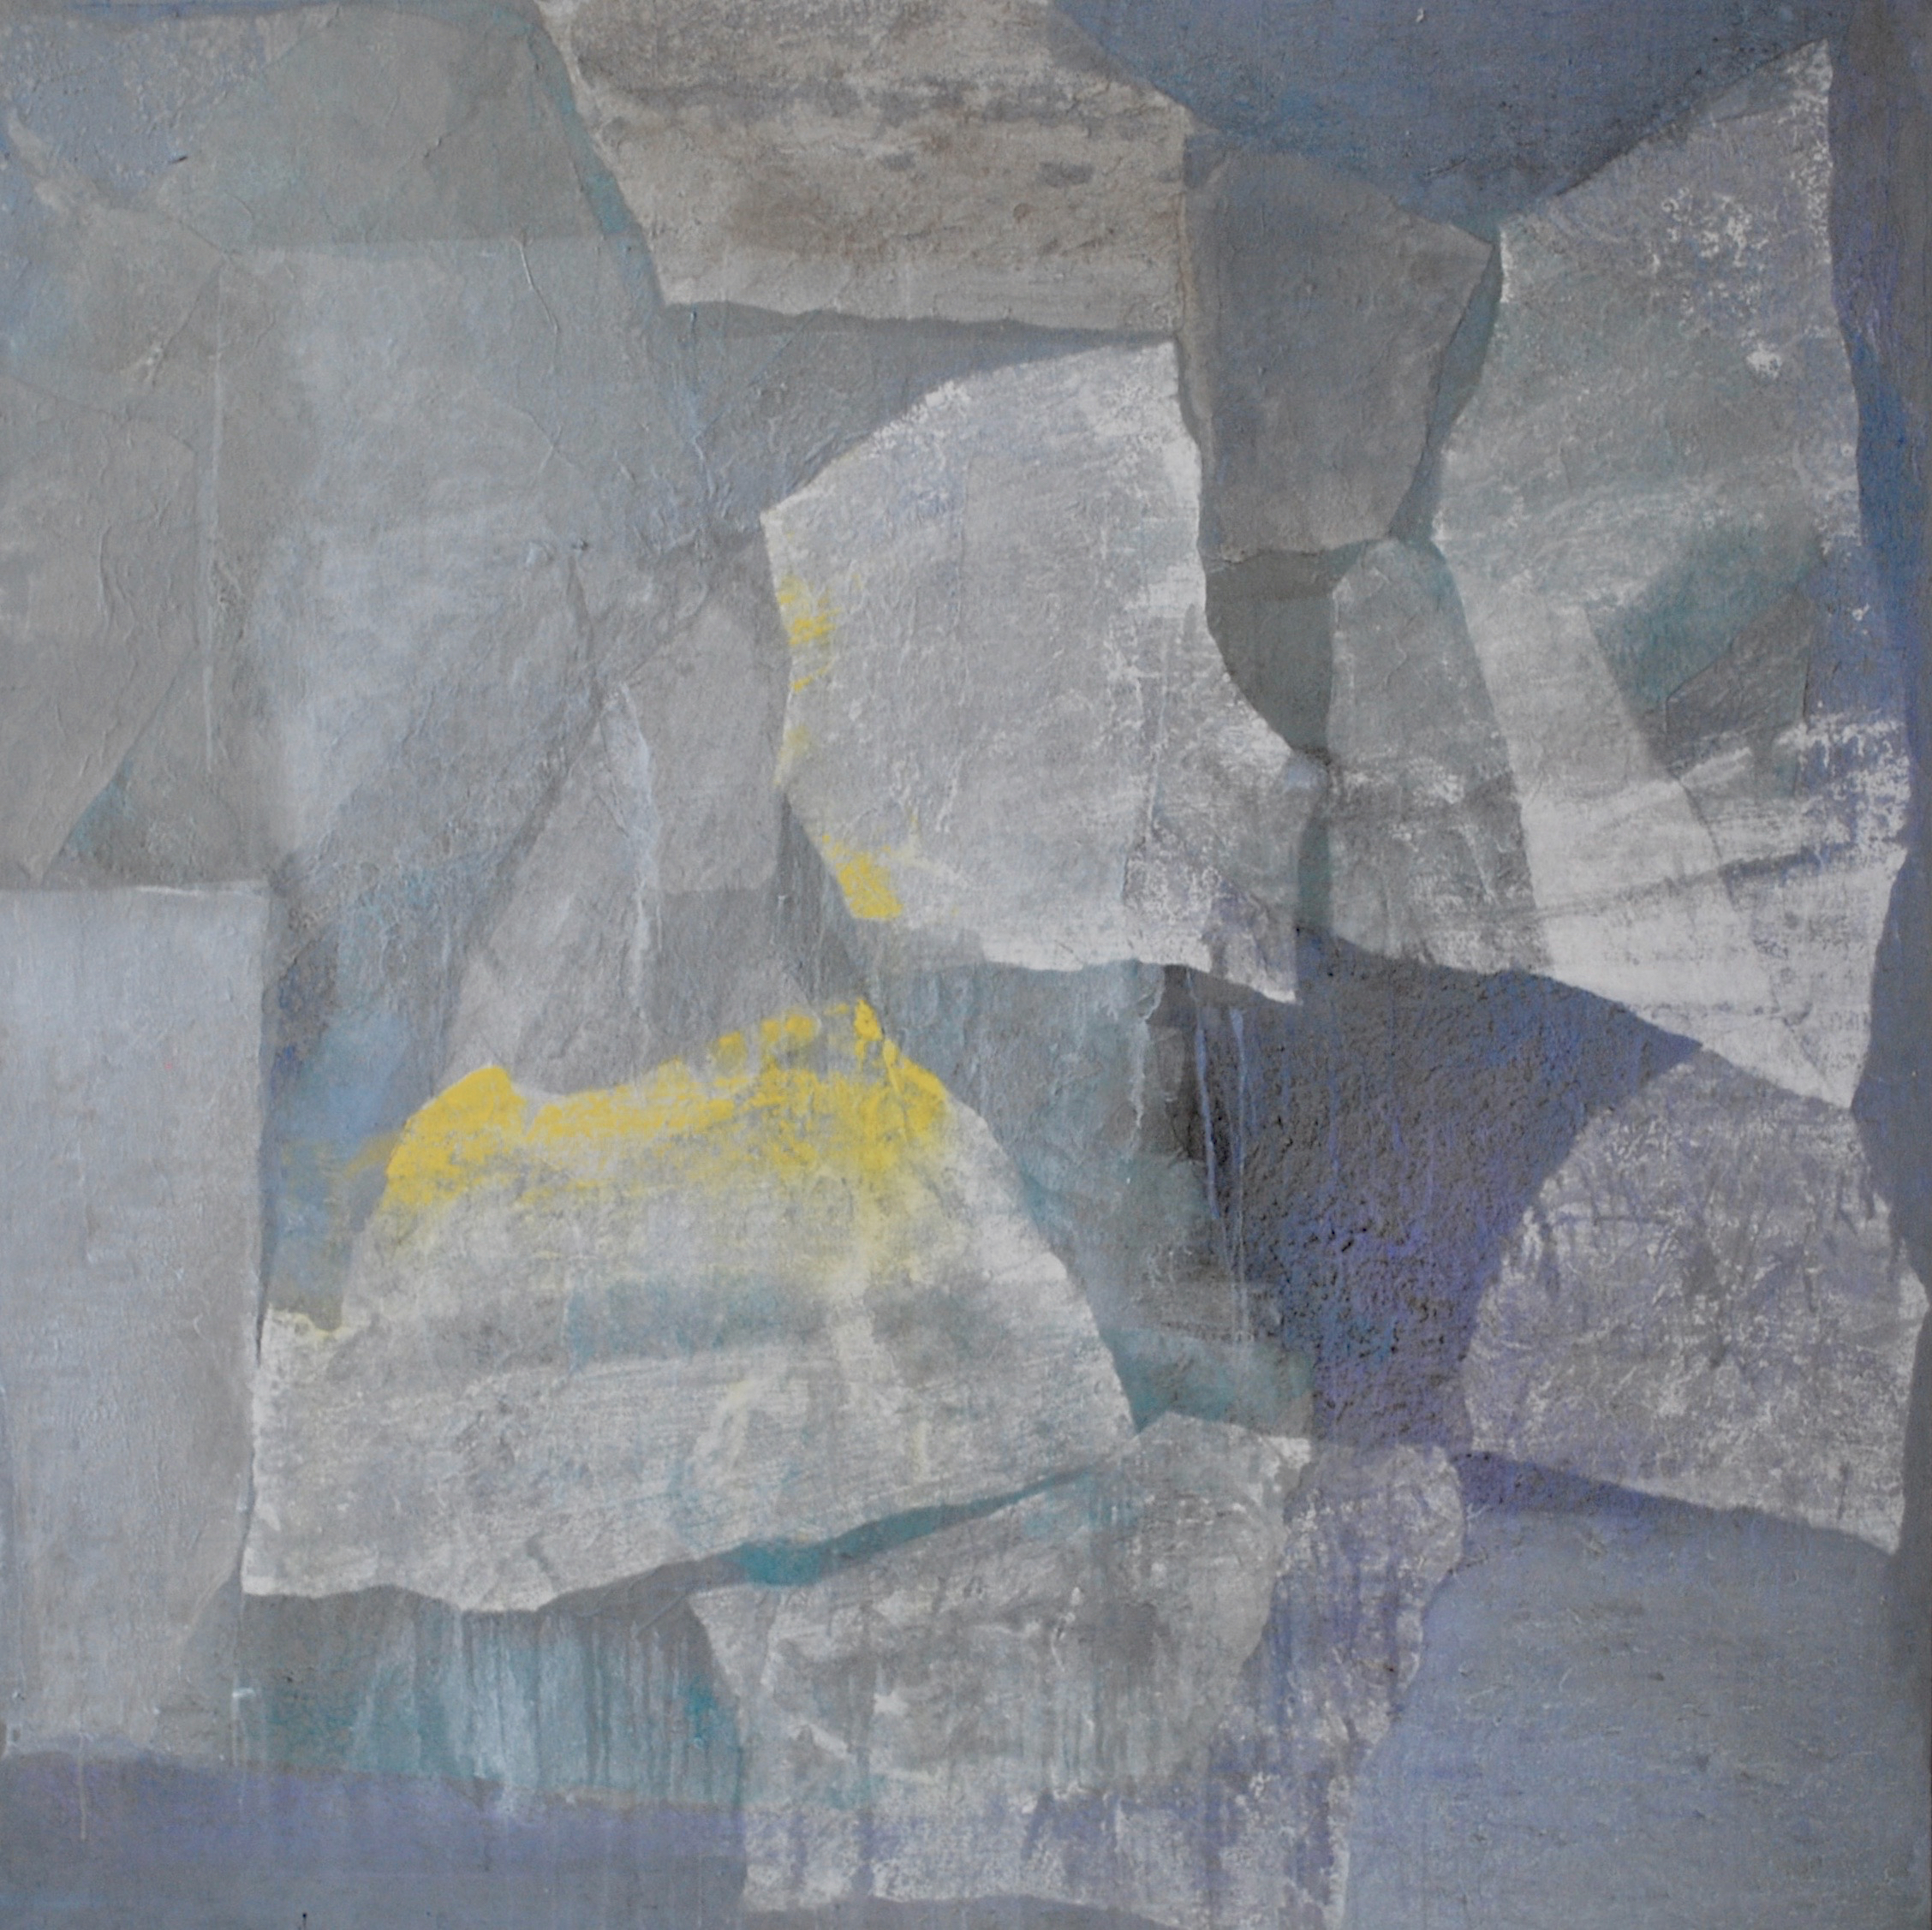 SoHyun Bae, Wrapped Shards #13, 2002, rice-paper and pure pigment on canvas, 60 x 60 inches